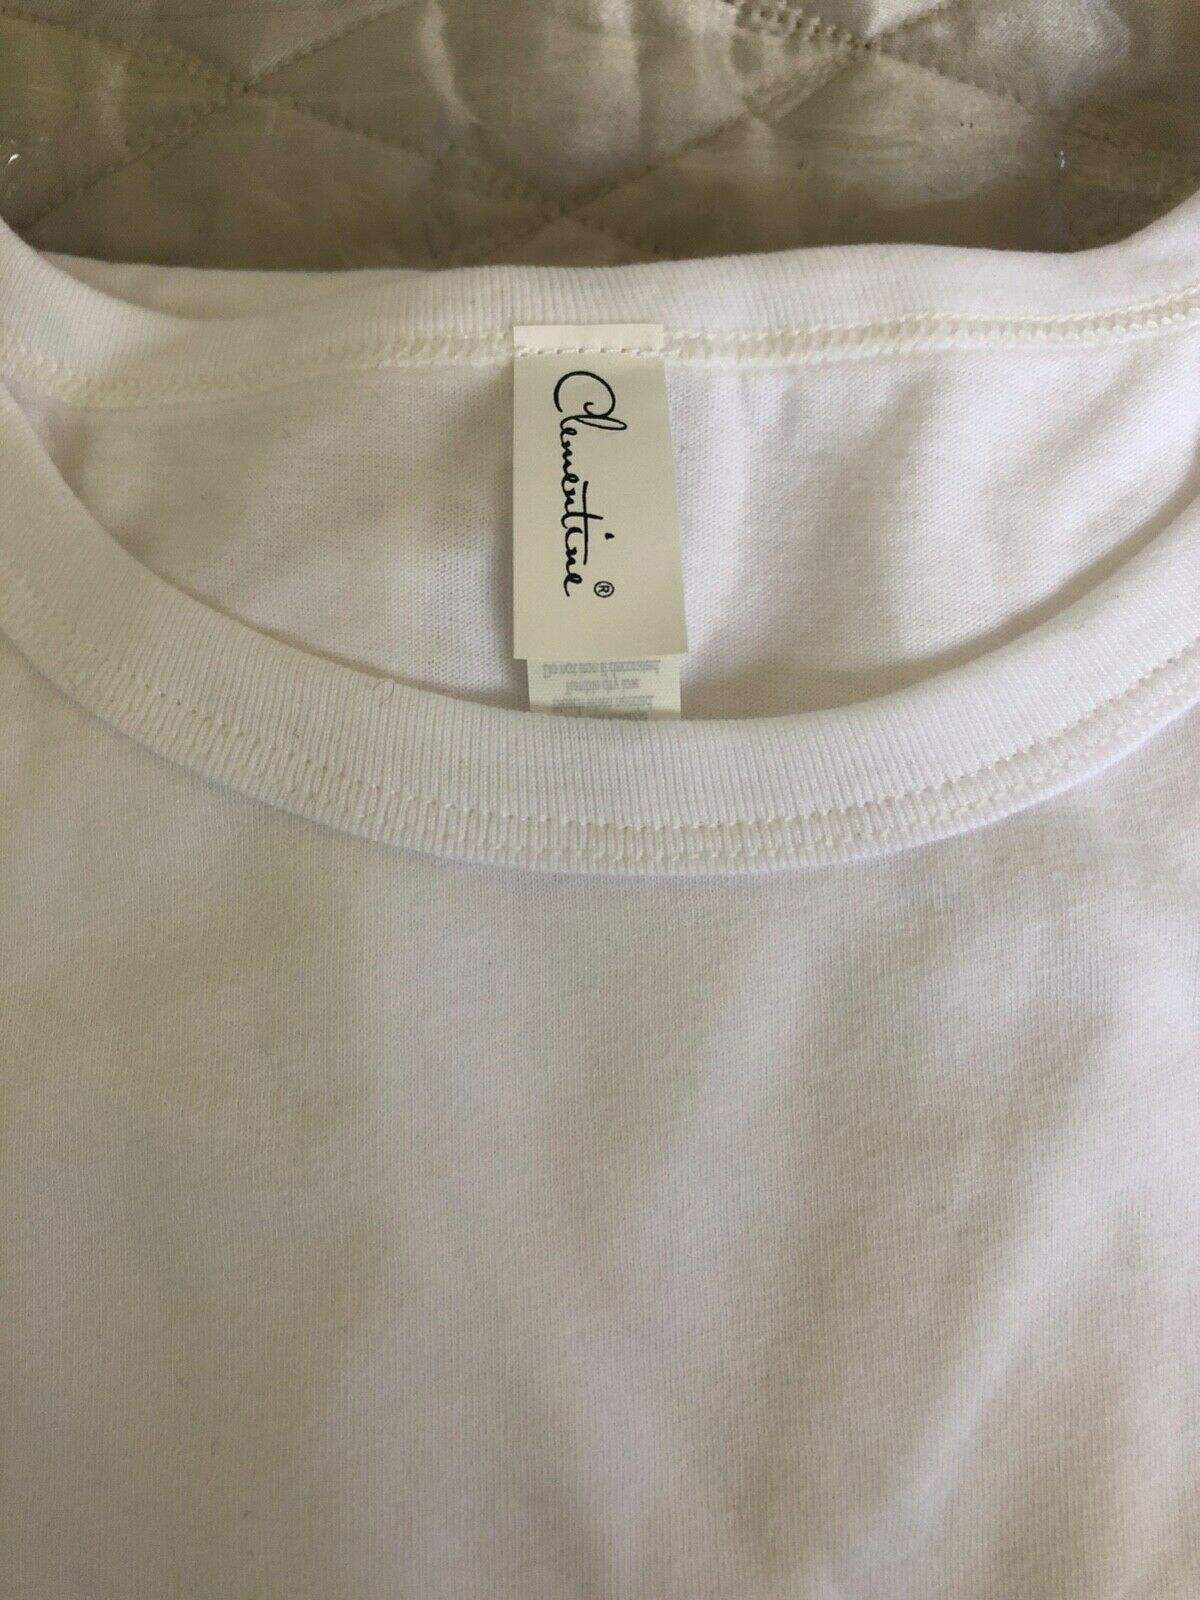 apparel women s tee shirt white xl